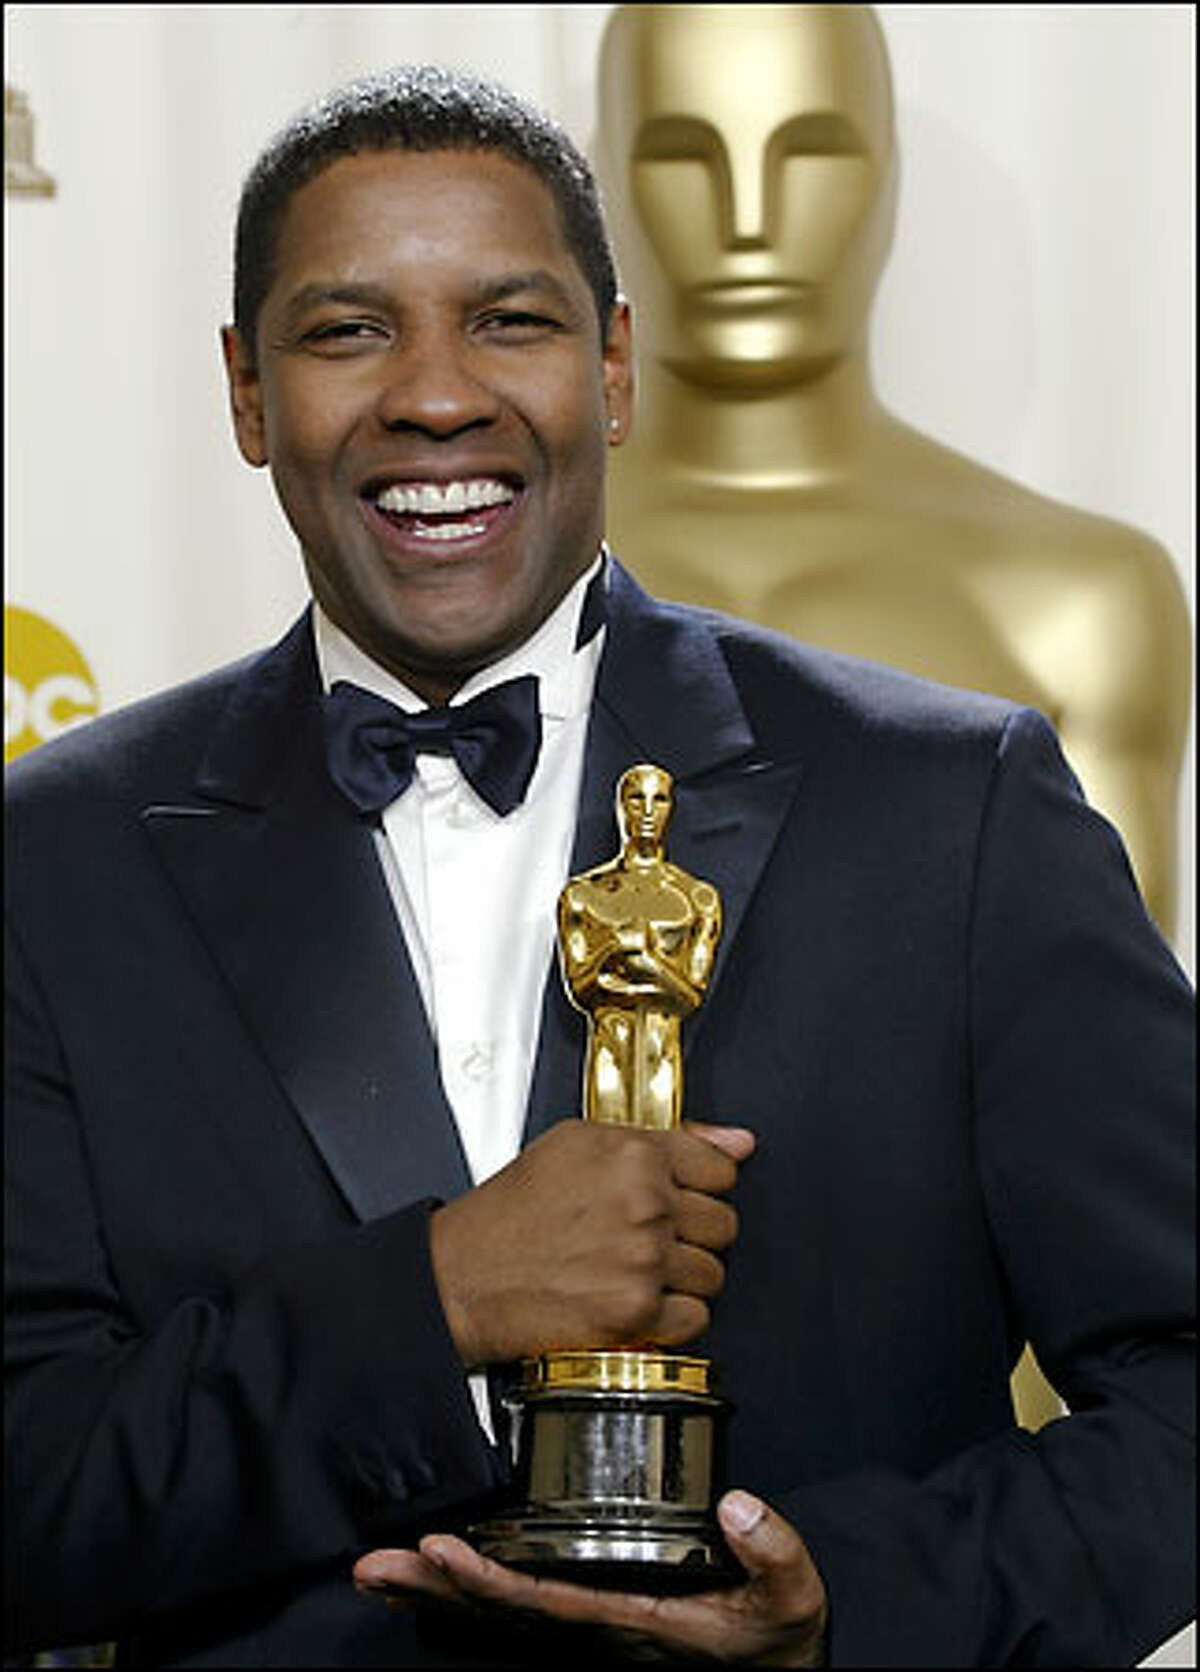 Denzel Washington poses with his Oscar for best actor for his work in the film